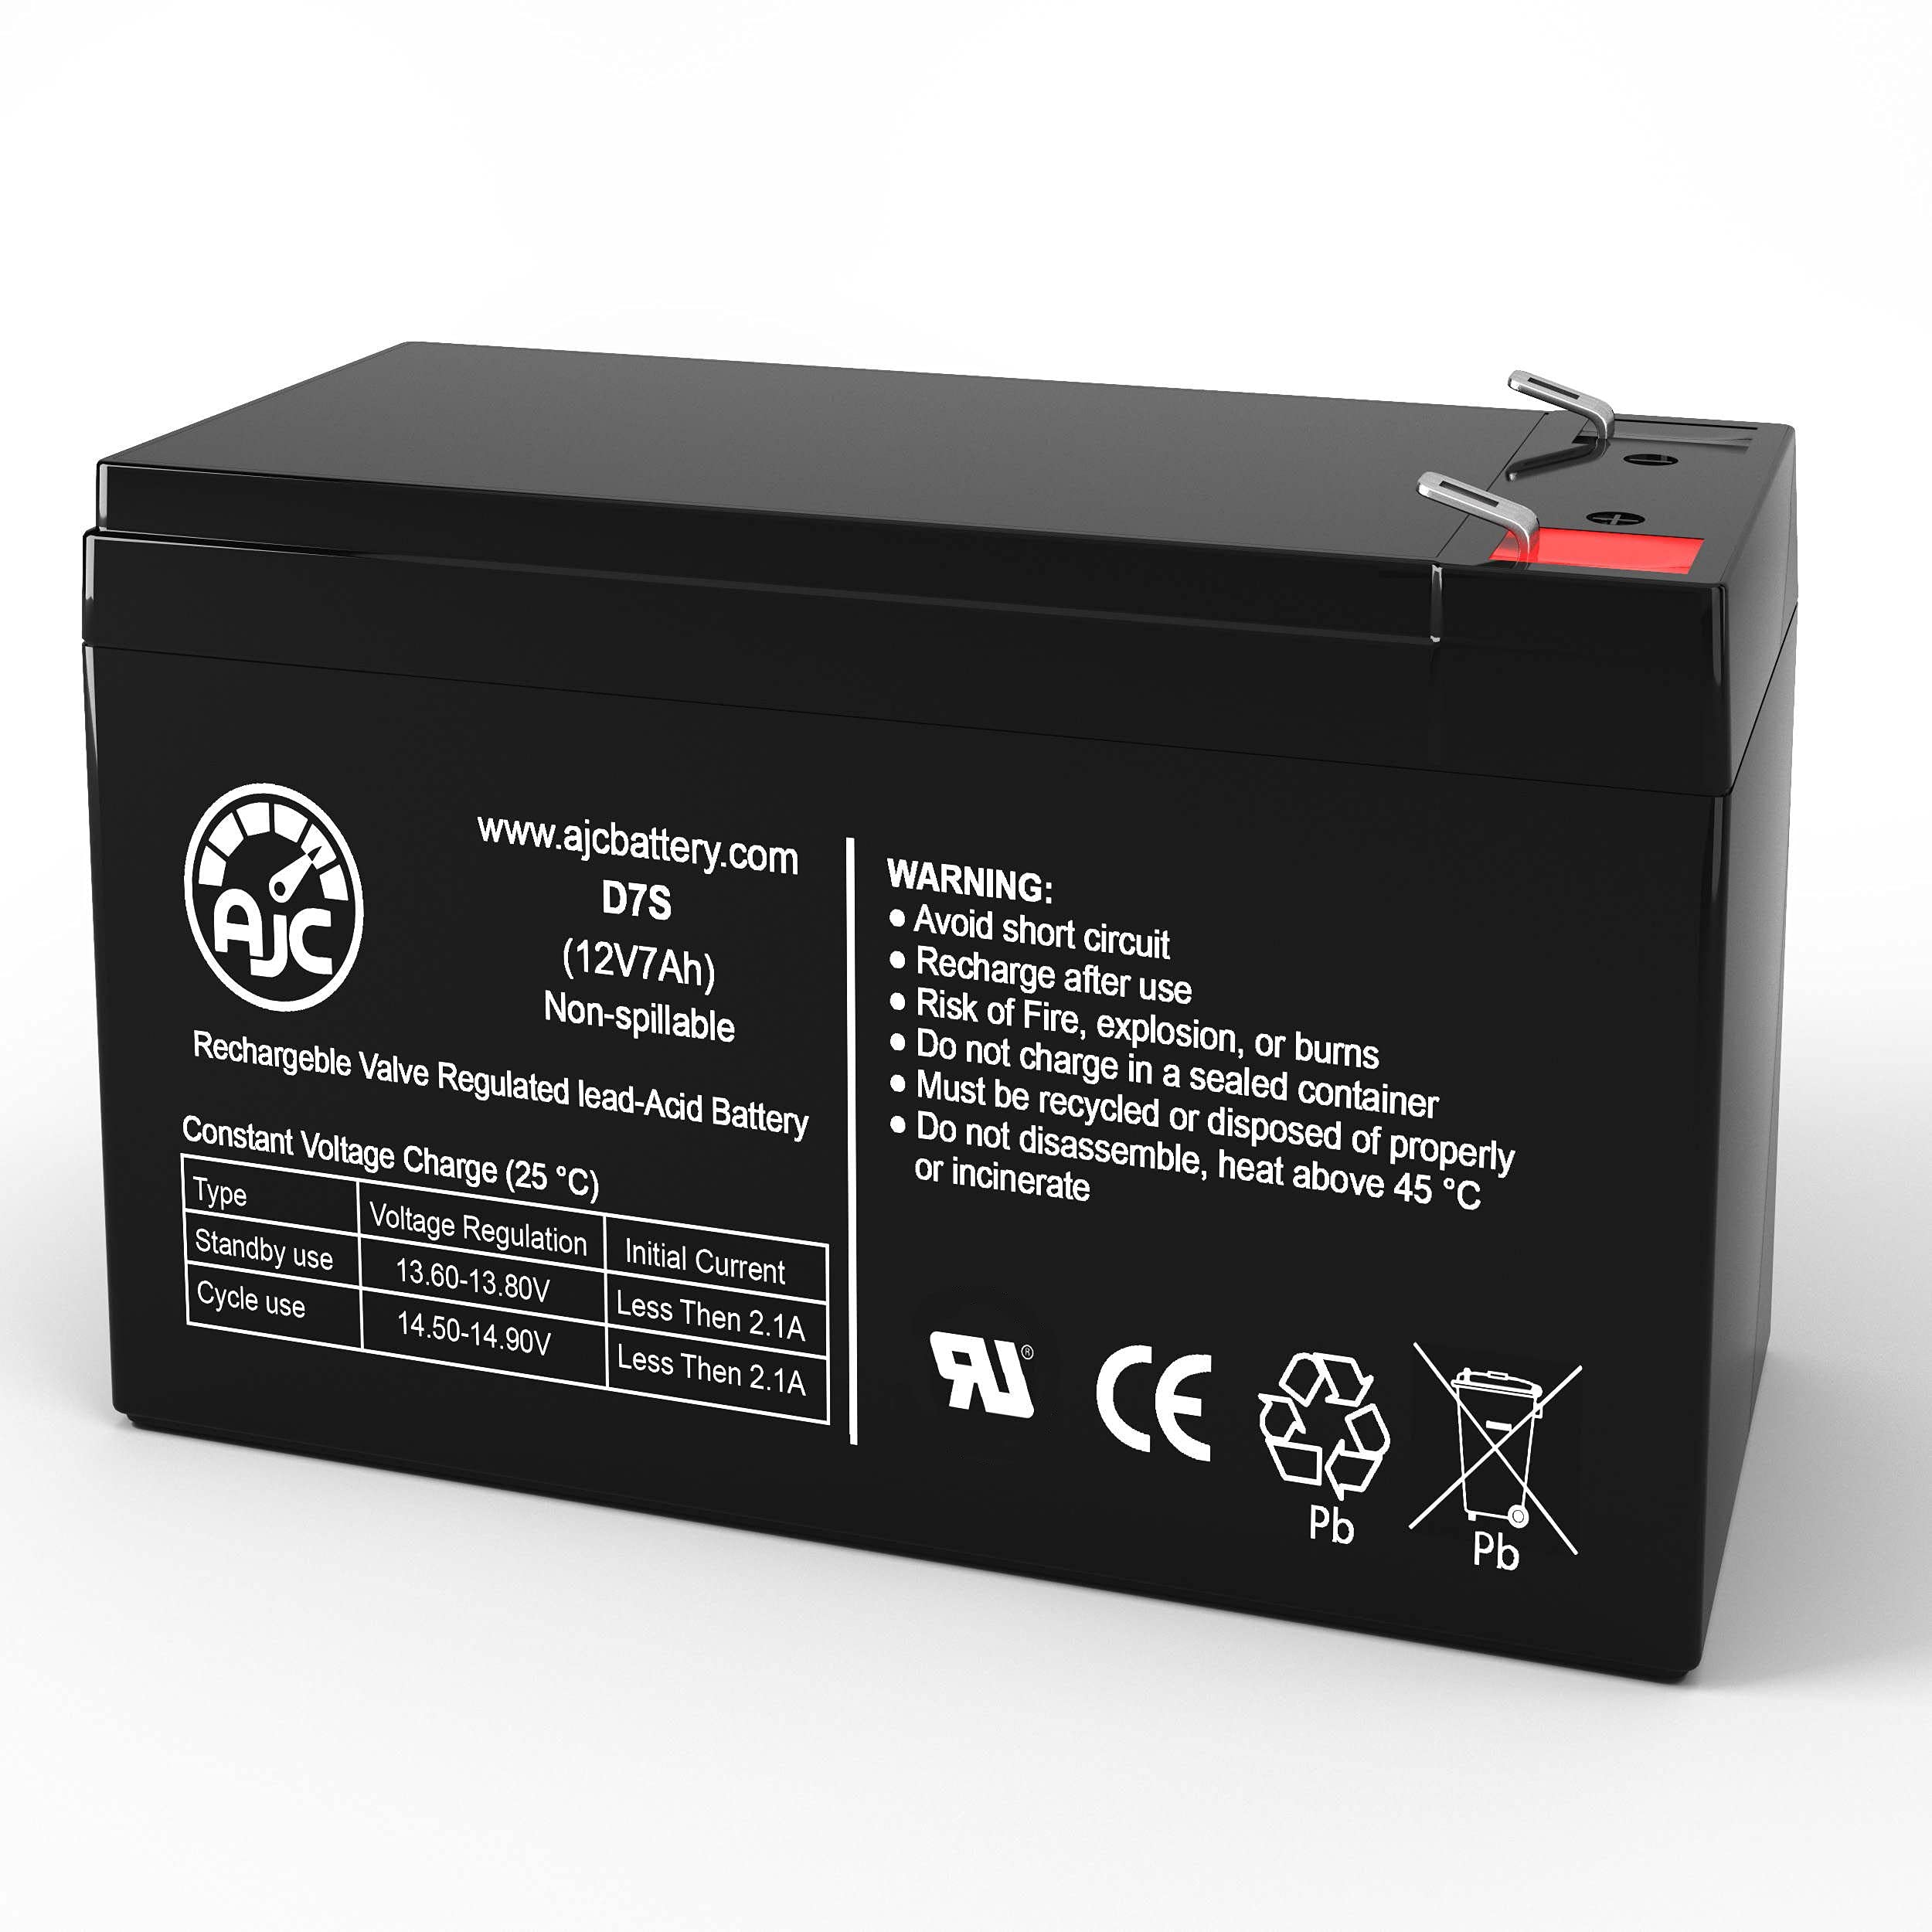 B&B BP7.2-12 12V 7Ah Sealed Lead Acid Battery - This is an AJC Brand Replacement